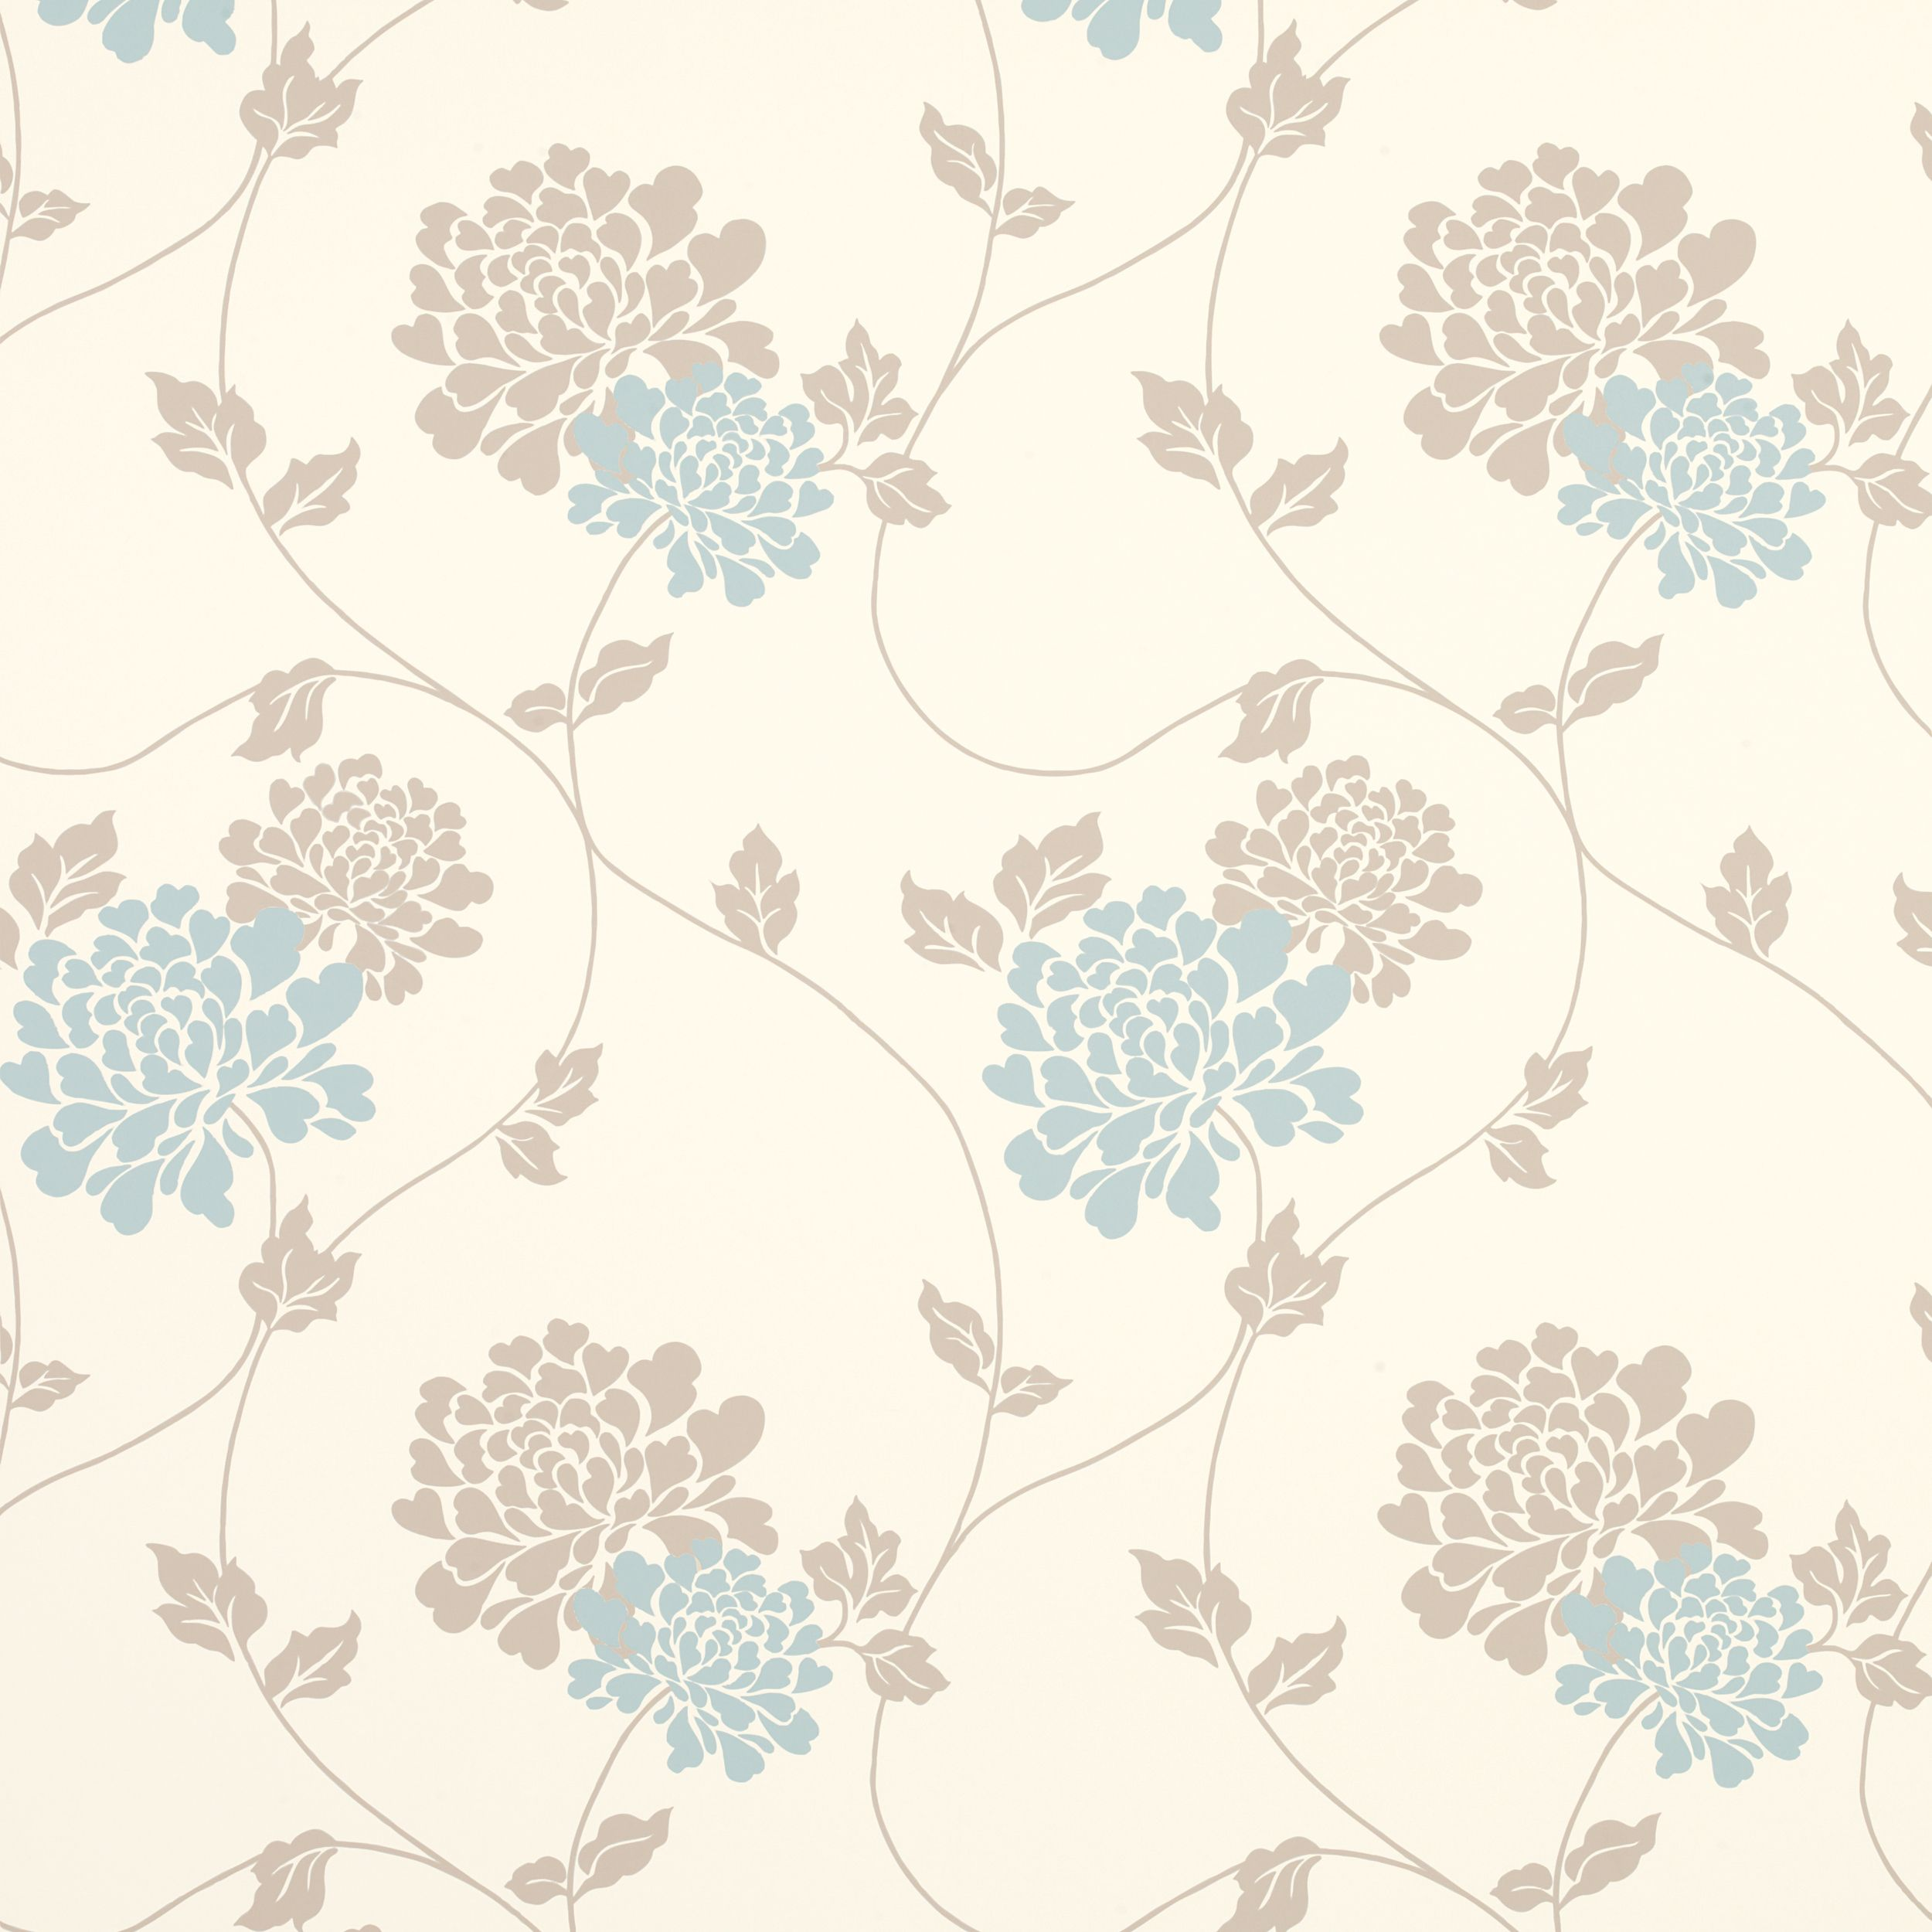 Isodore Duck Egg/Truffle Floral Wallpaper Floral pattern